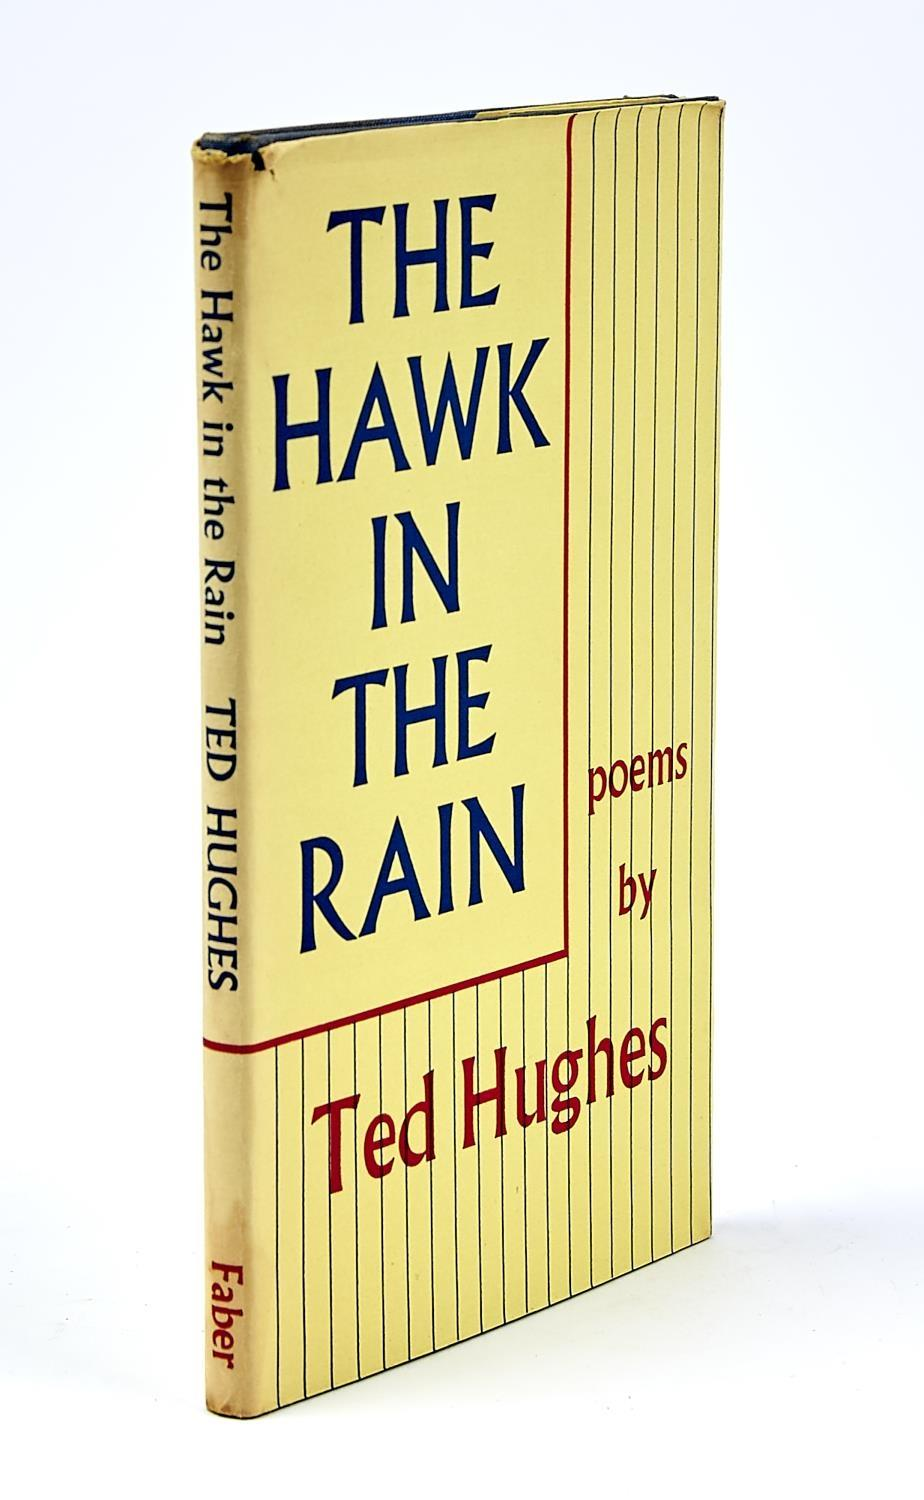 HUGHES, TED - THE HAWK IN THE RAIN, FIRST EDITION, HALF TITLE, CLOTH, DUST JACKET, ALL CORNERS